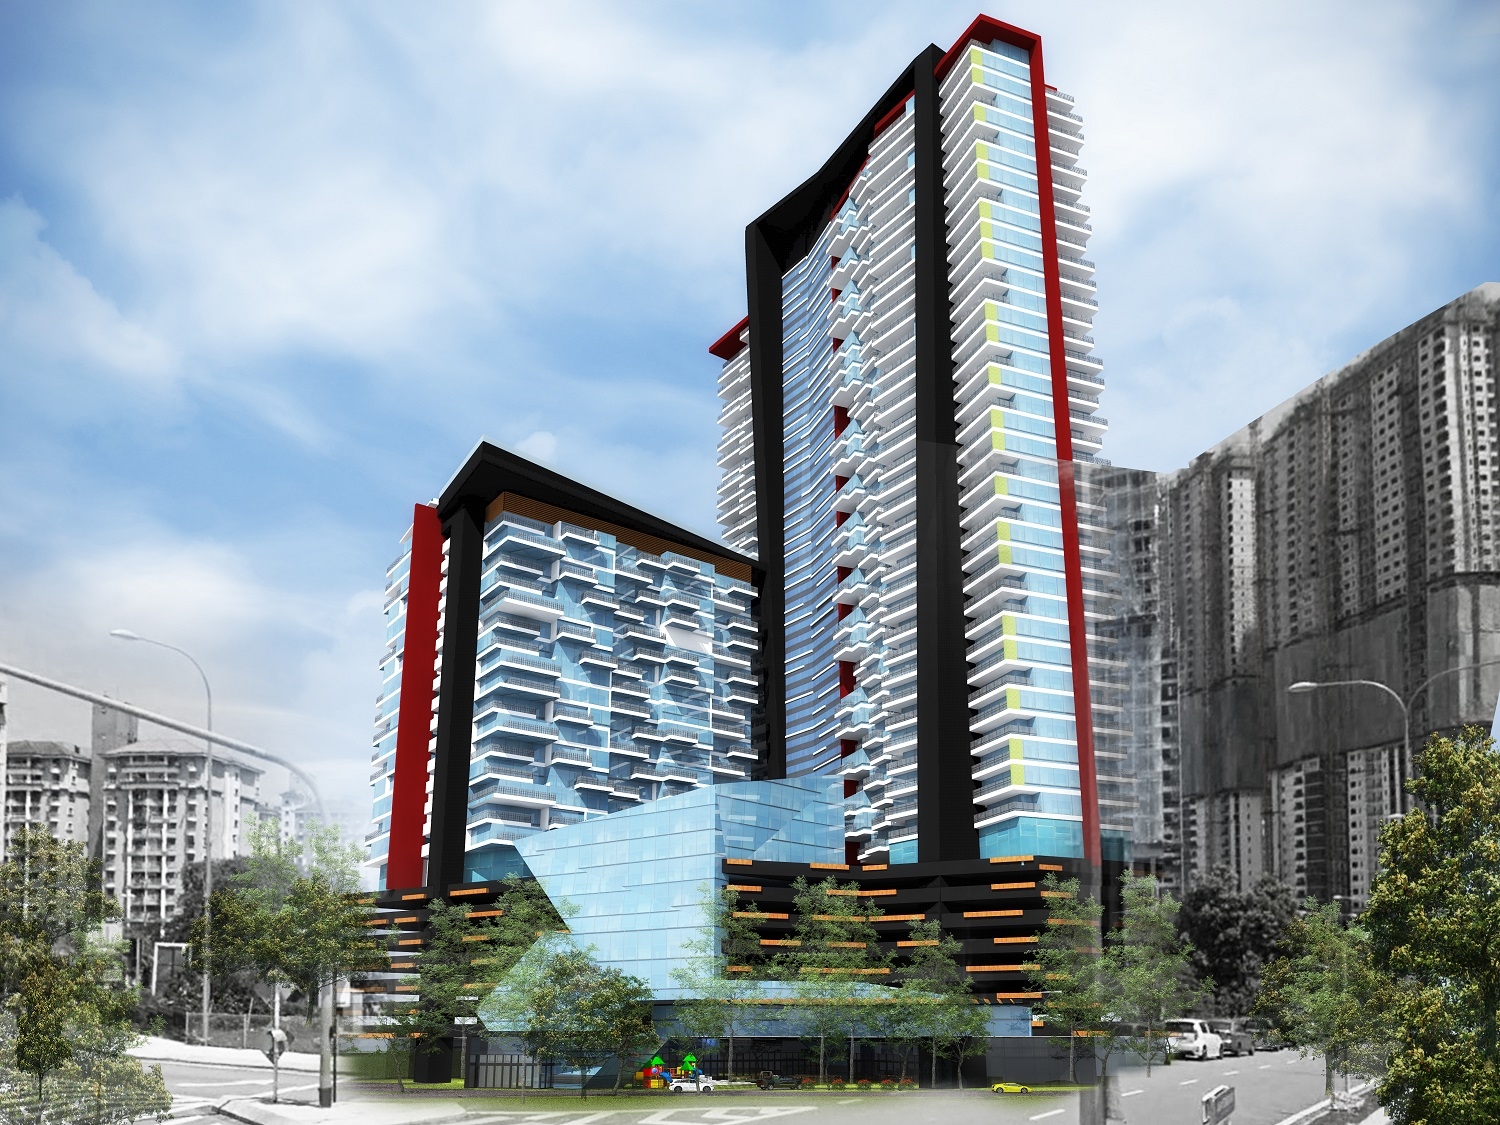 Bangsar South Redevelopment